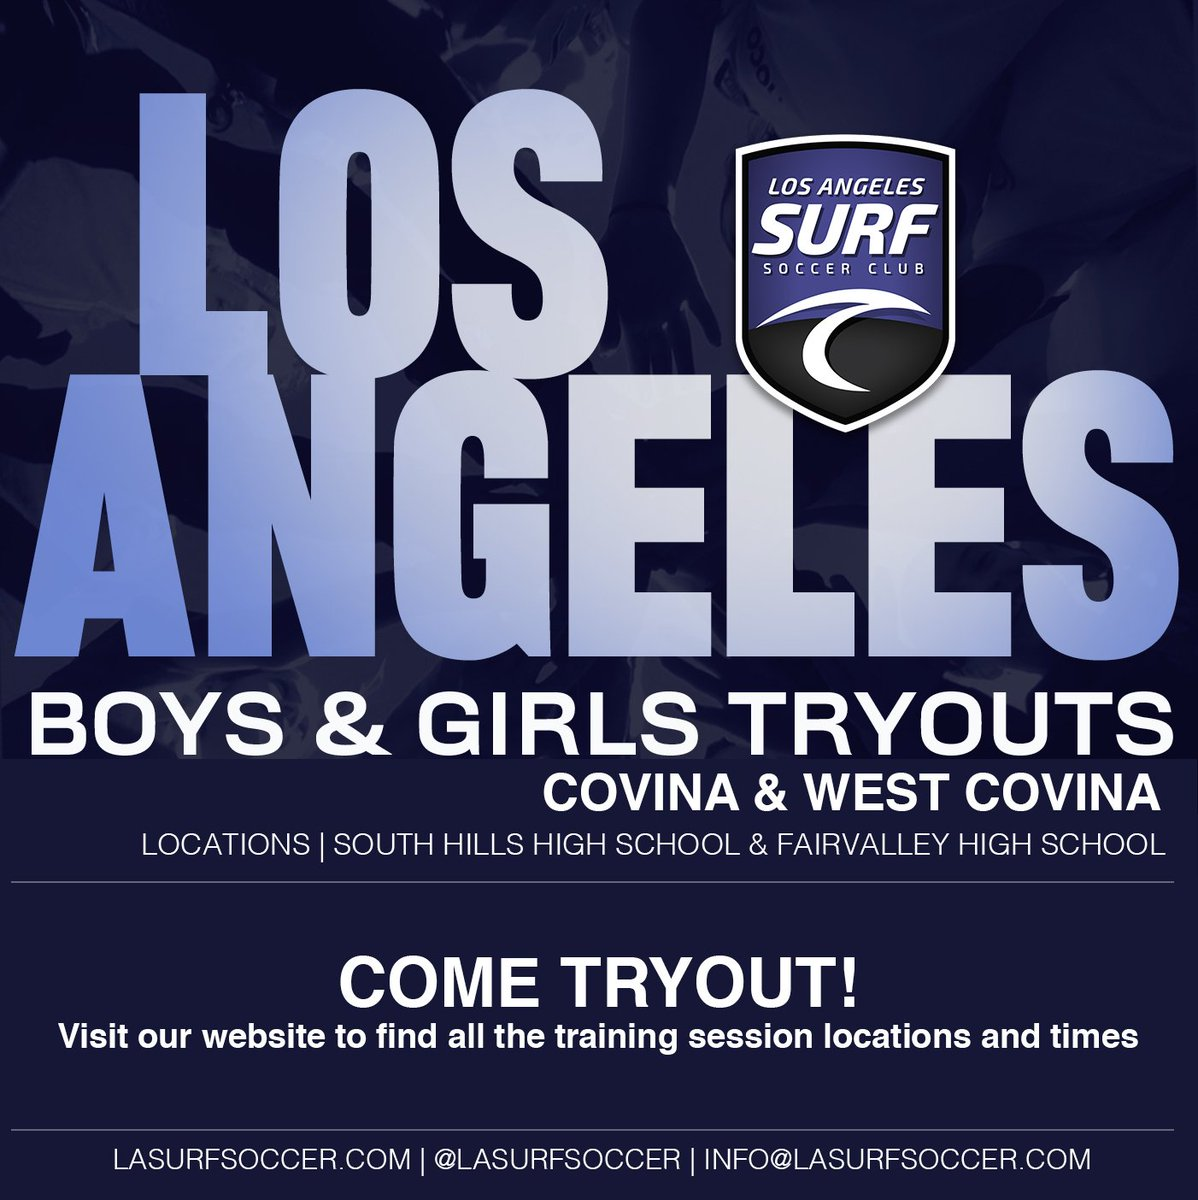 LA SURF   TRYOUTS  Come join our training sessions tonight!  Visit our website for all times and locations. http://Lasurfsoccer.com/tryouts  Follow us on social media @lasurfsoccer for the latest updates  #Lasurf #tryouts #lasurfsoccer #sanmarino #sgvsurf #pasadena #covina #westcovina